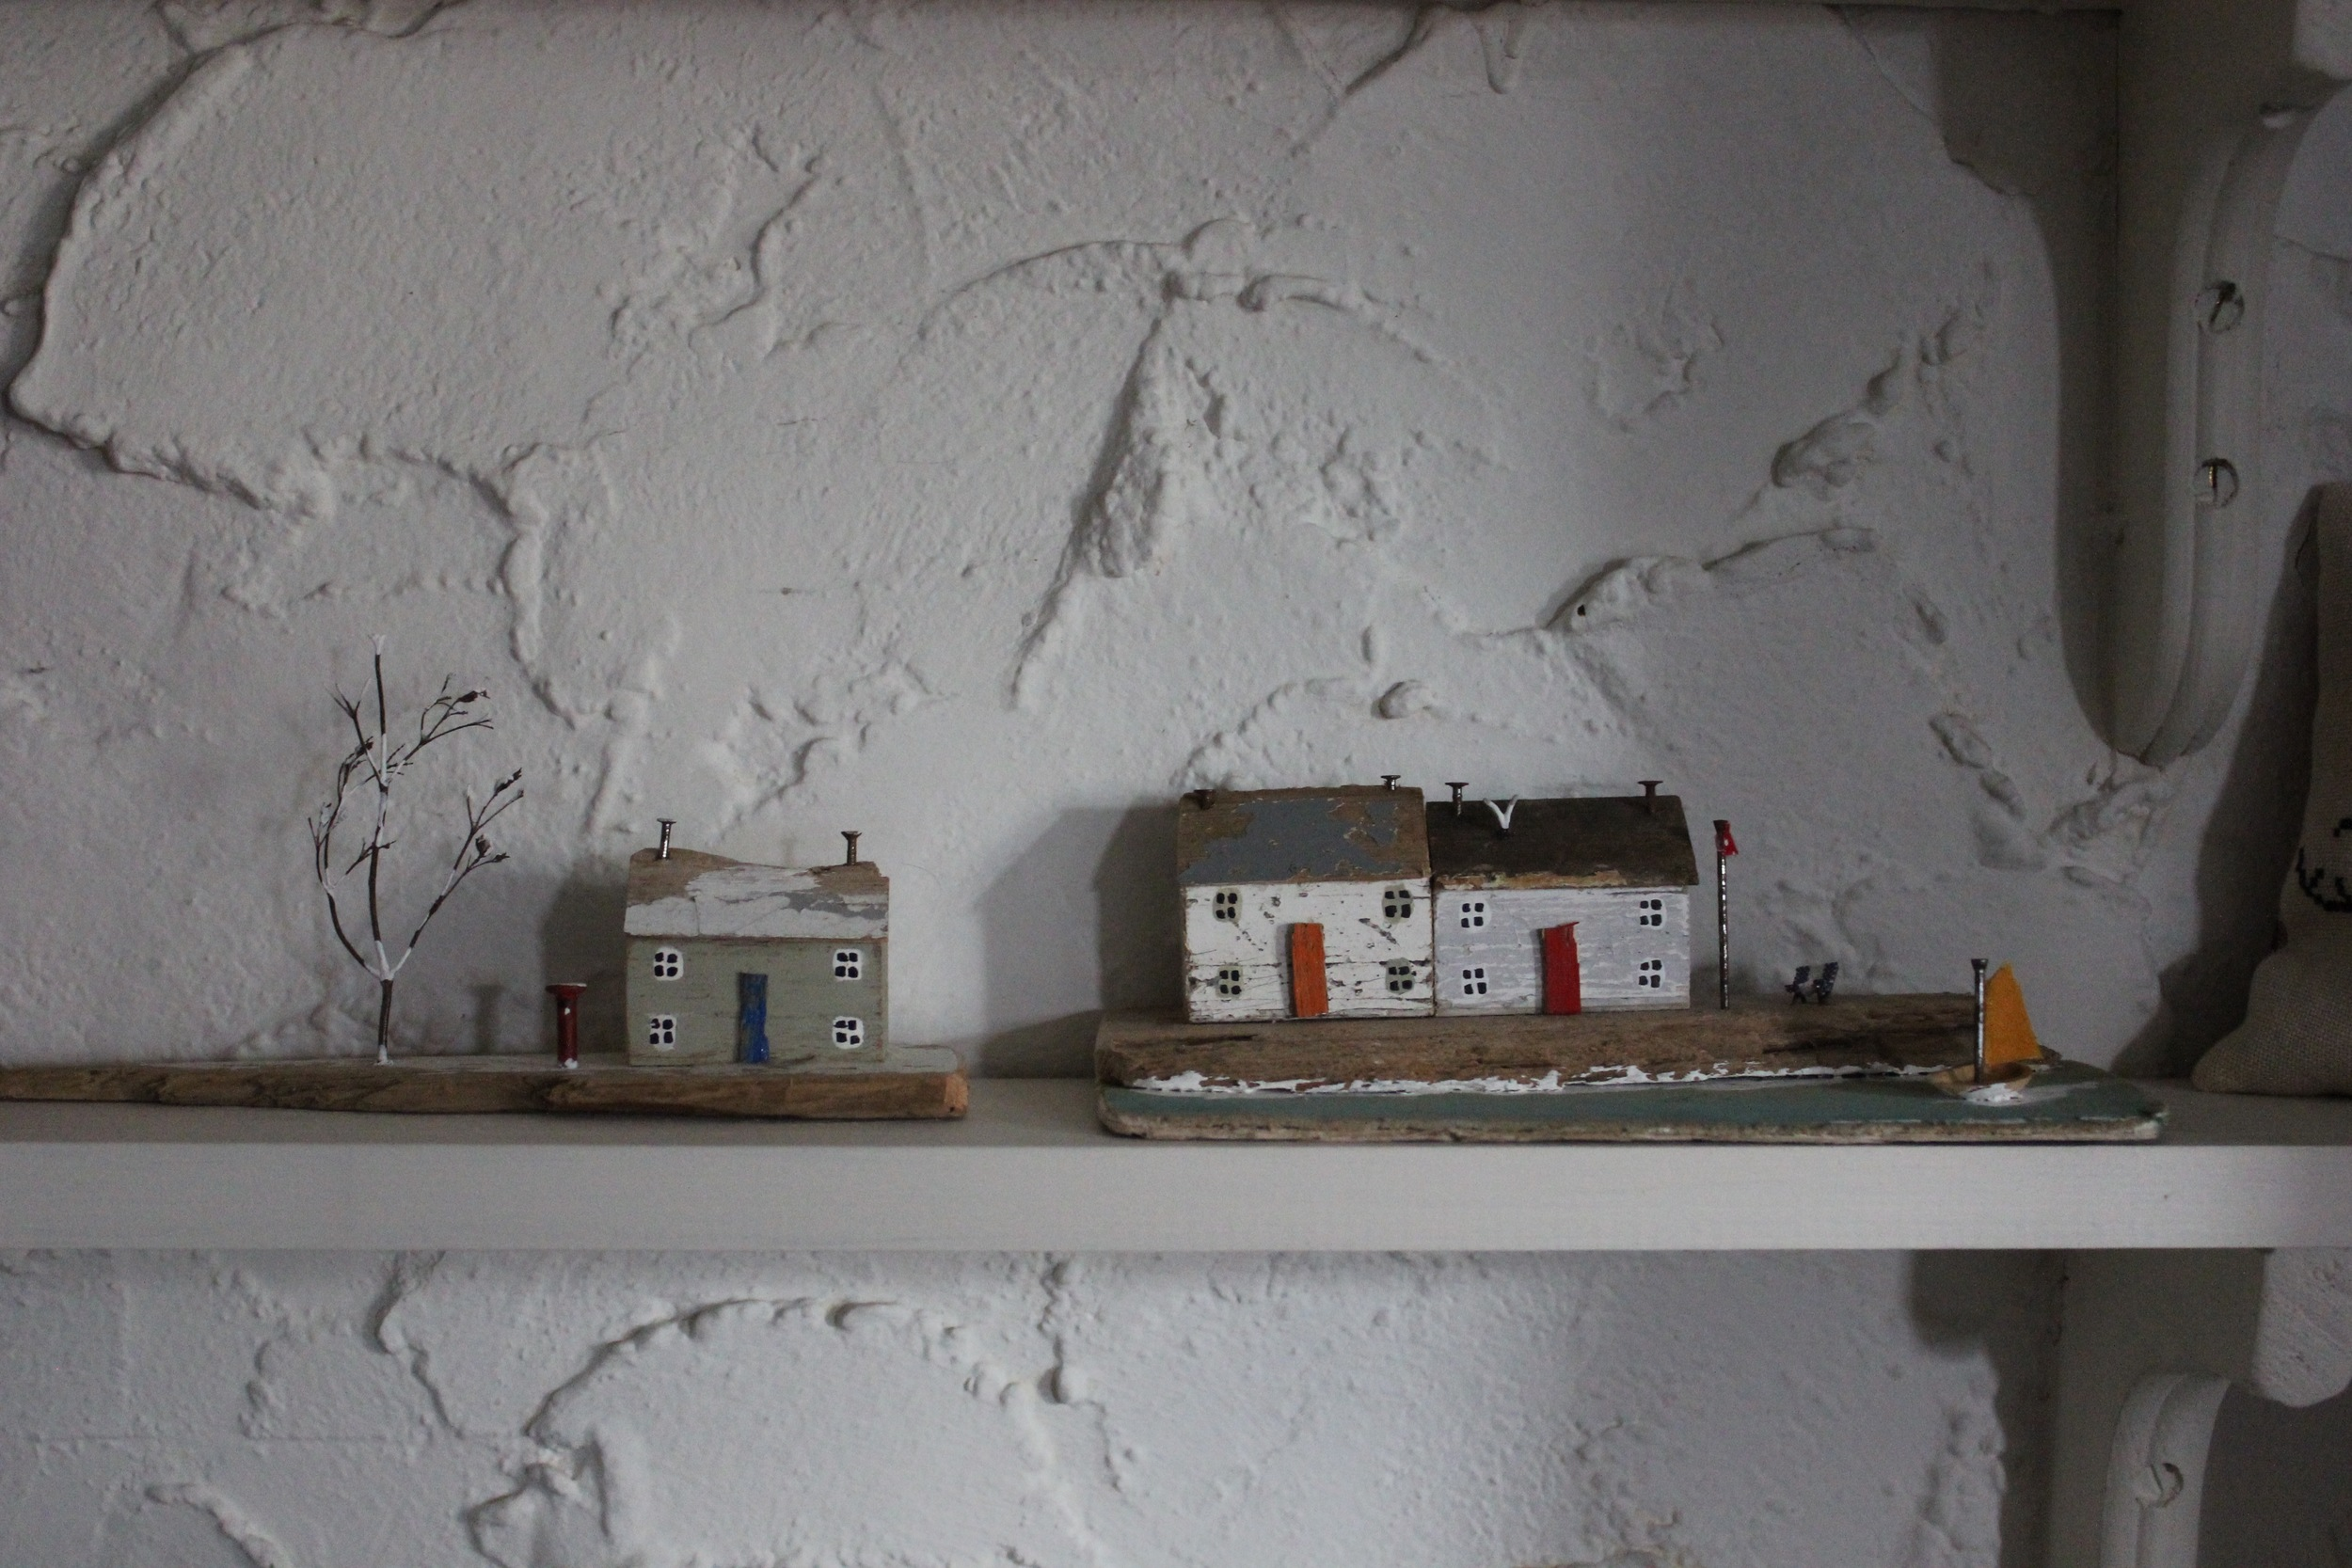 Winter Cottage and Waiting for Summer, both by Kirsty Elson.